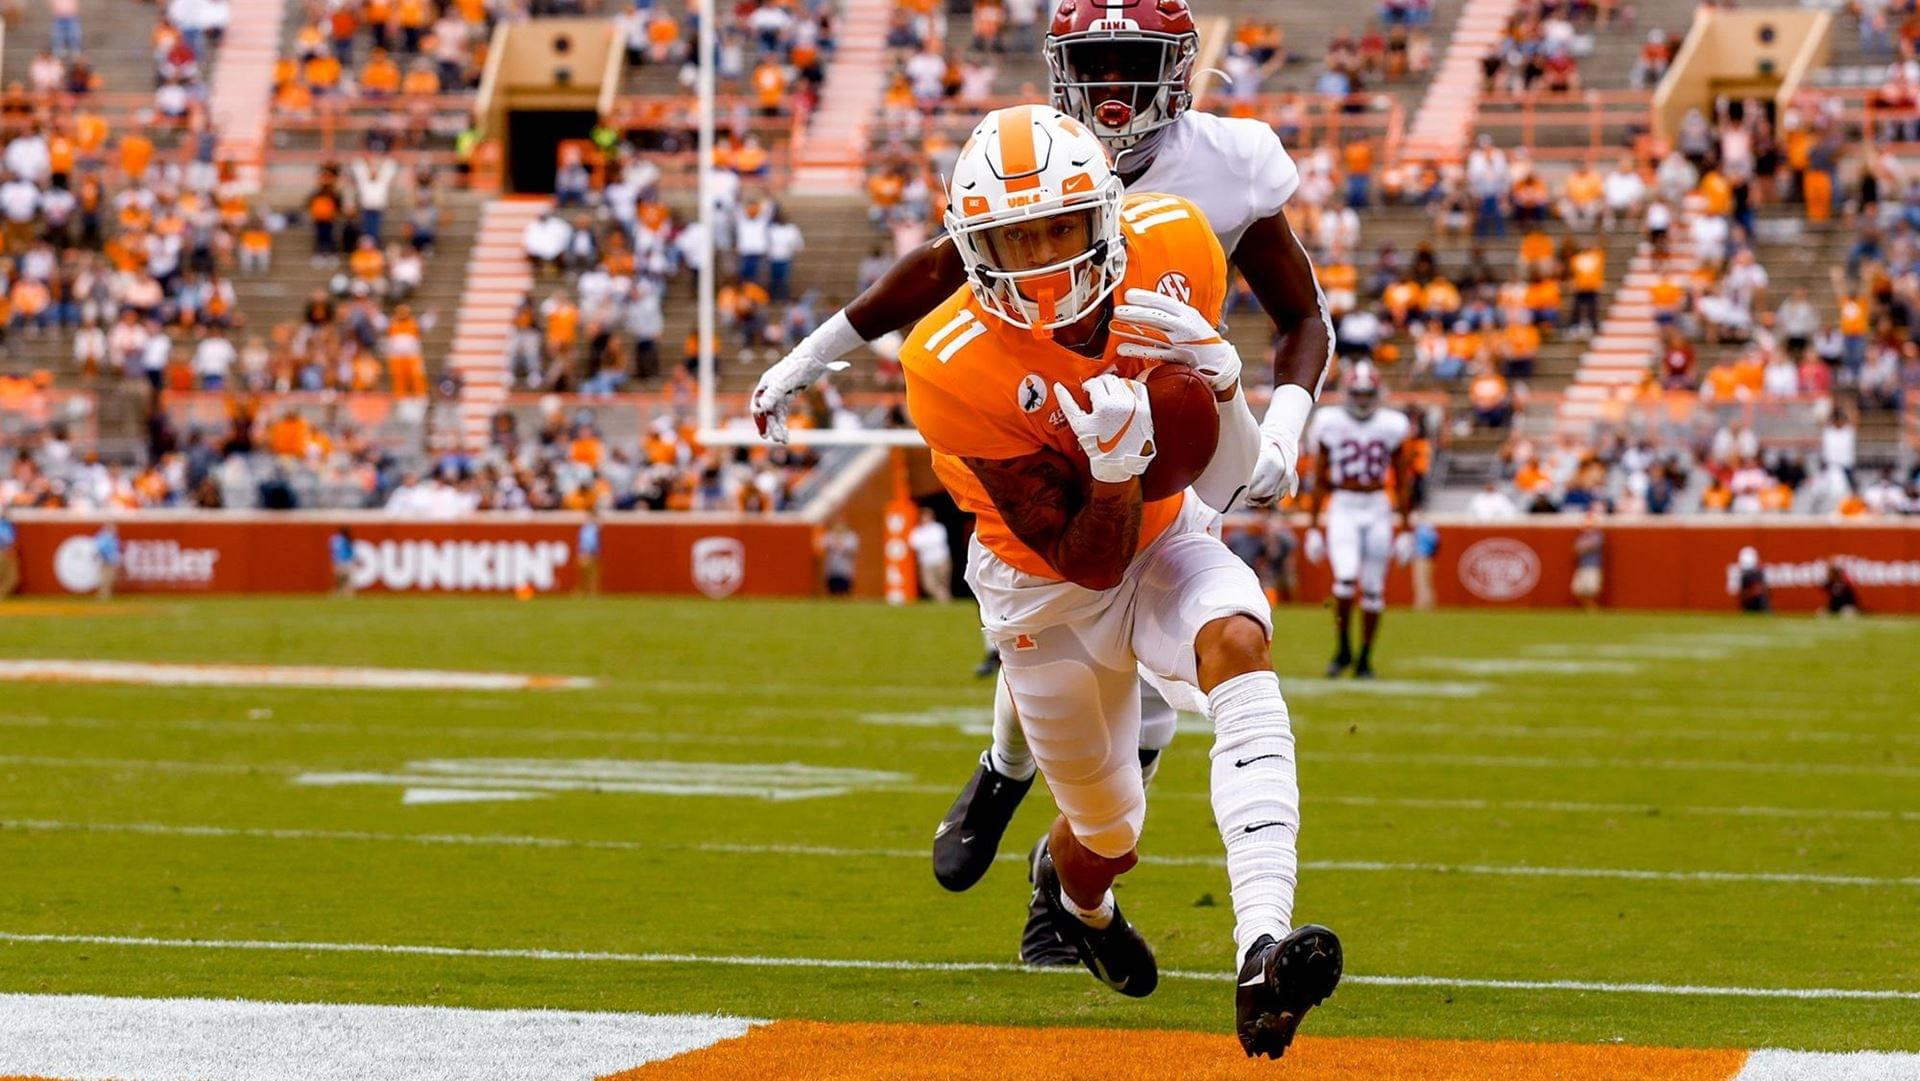 VOLS FALL TO TIDE